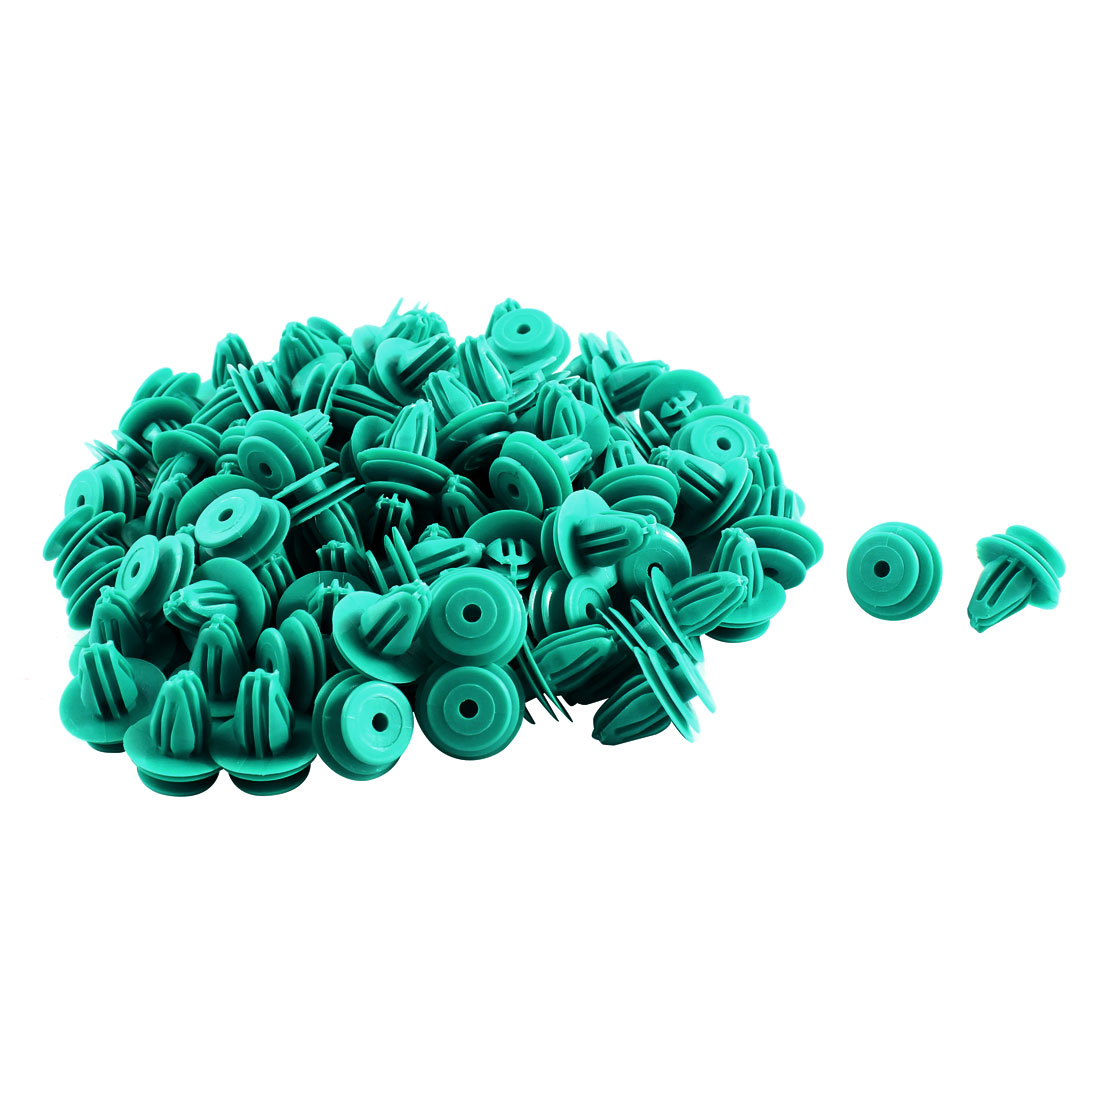 100 Pcs Blue Plastic Splash Guard Fastener Rivet Clips 9mm x 13mm x 17mm